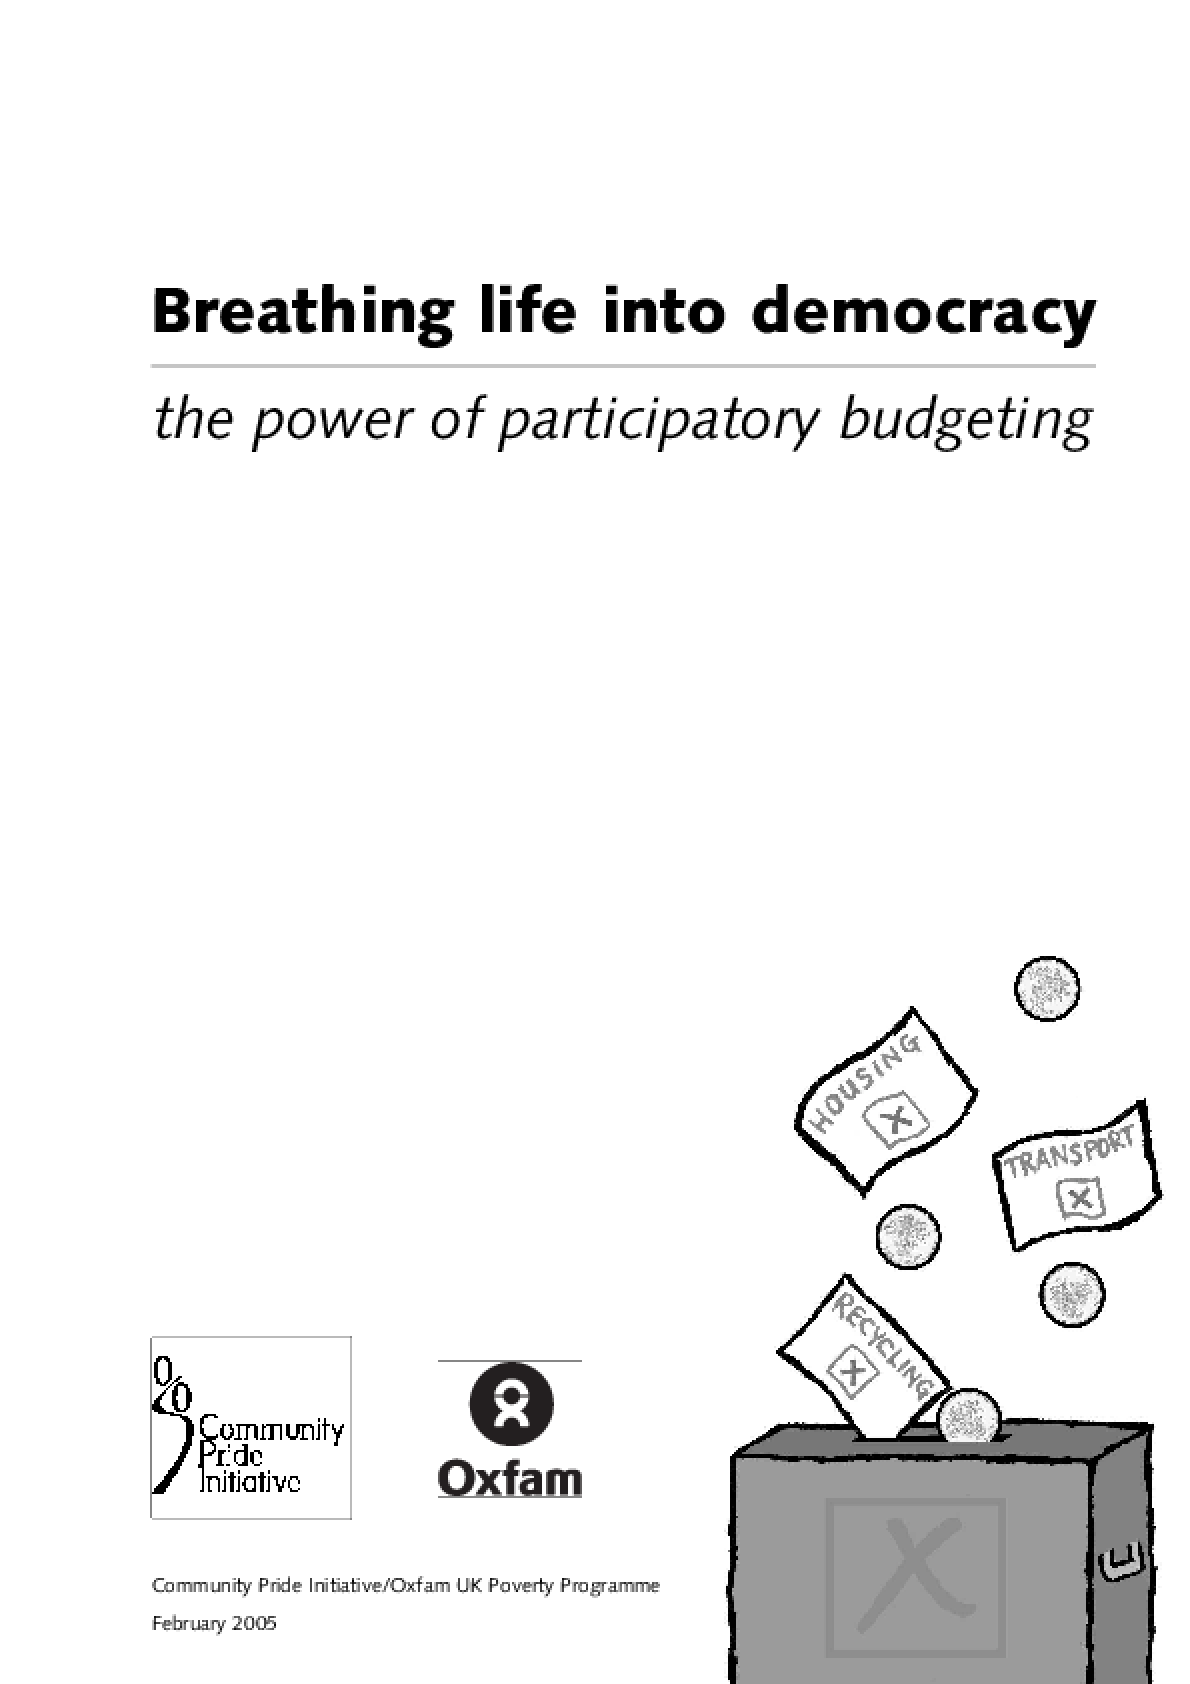 Breathing Life into Democracy: The power of participatory budgeting